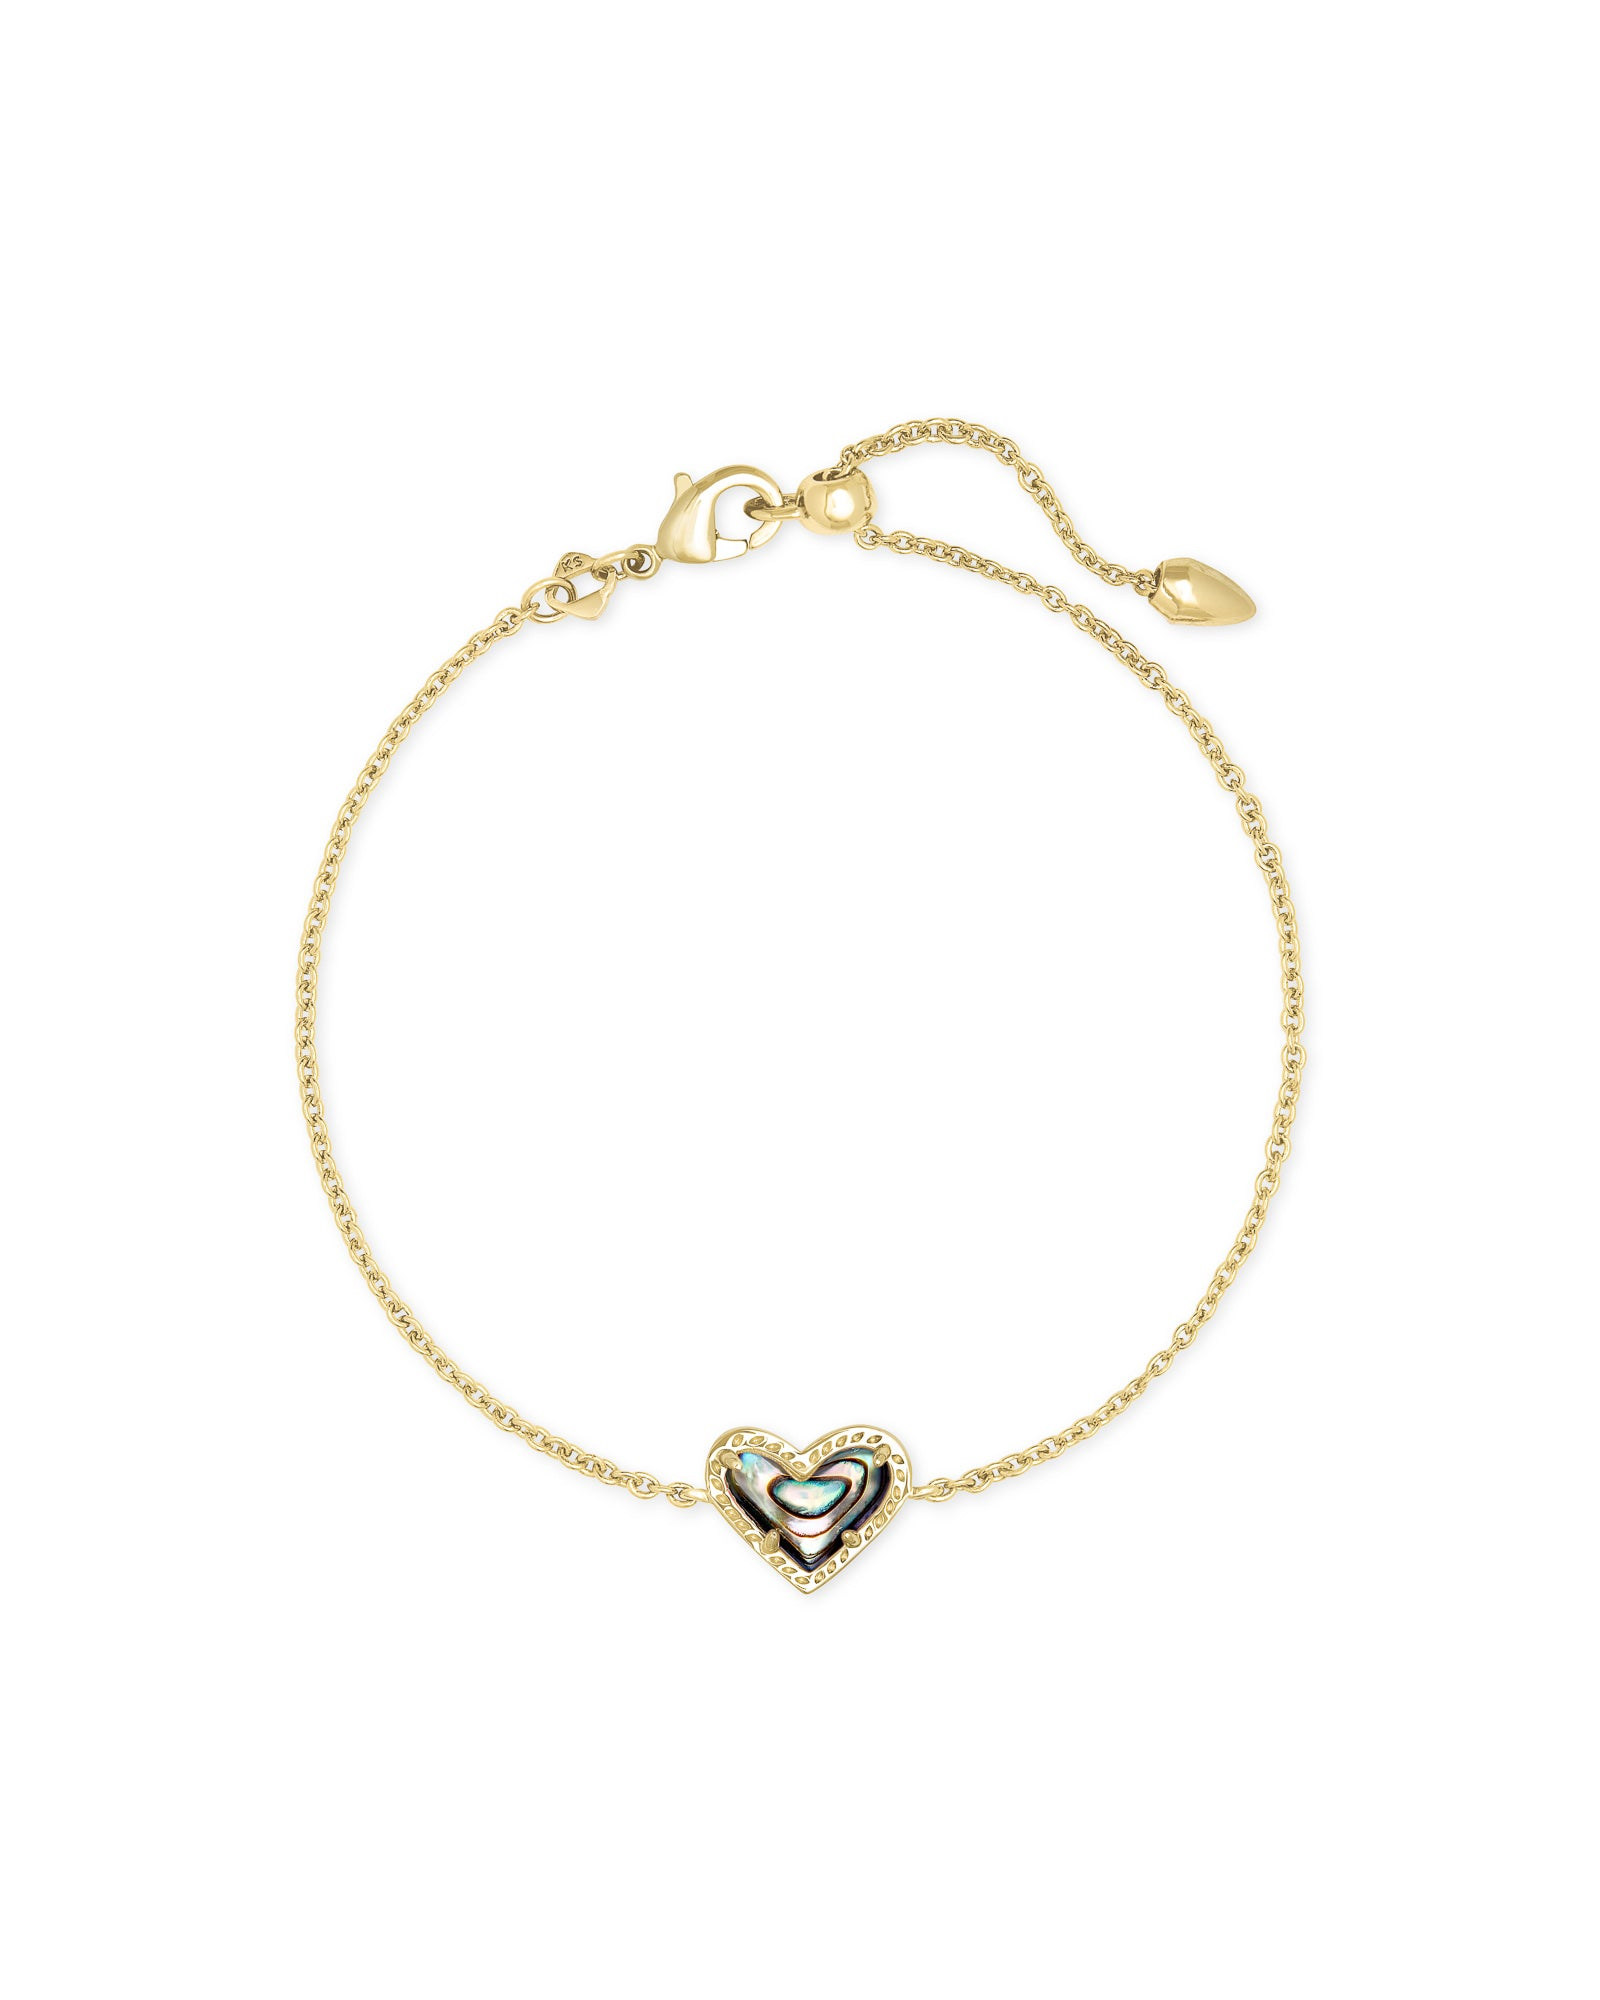 Ari Heart Gold Chain Bracelet In Abalone Shell